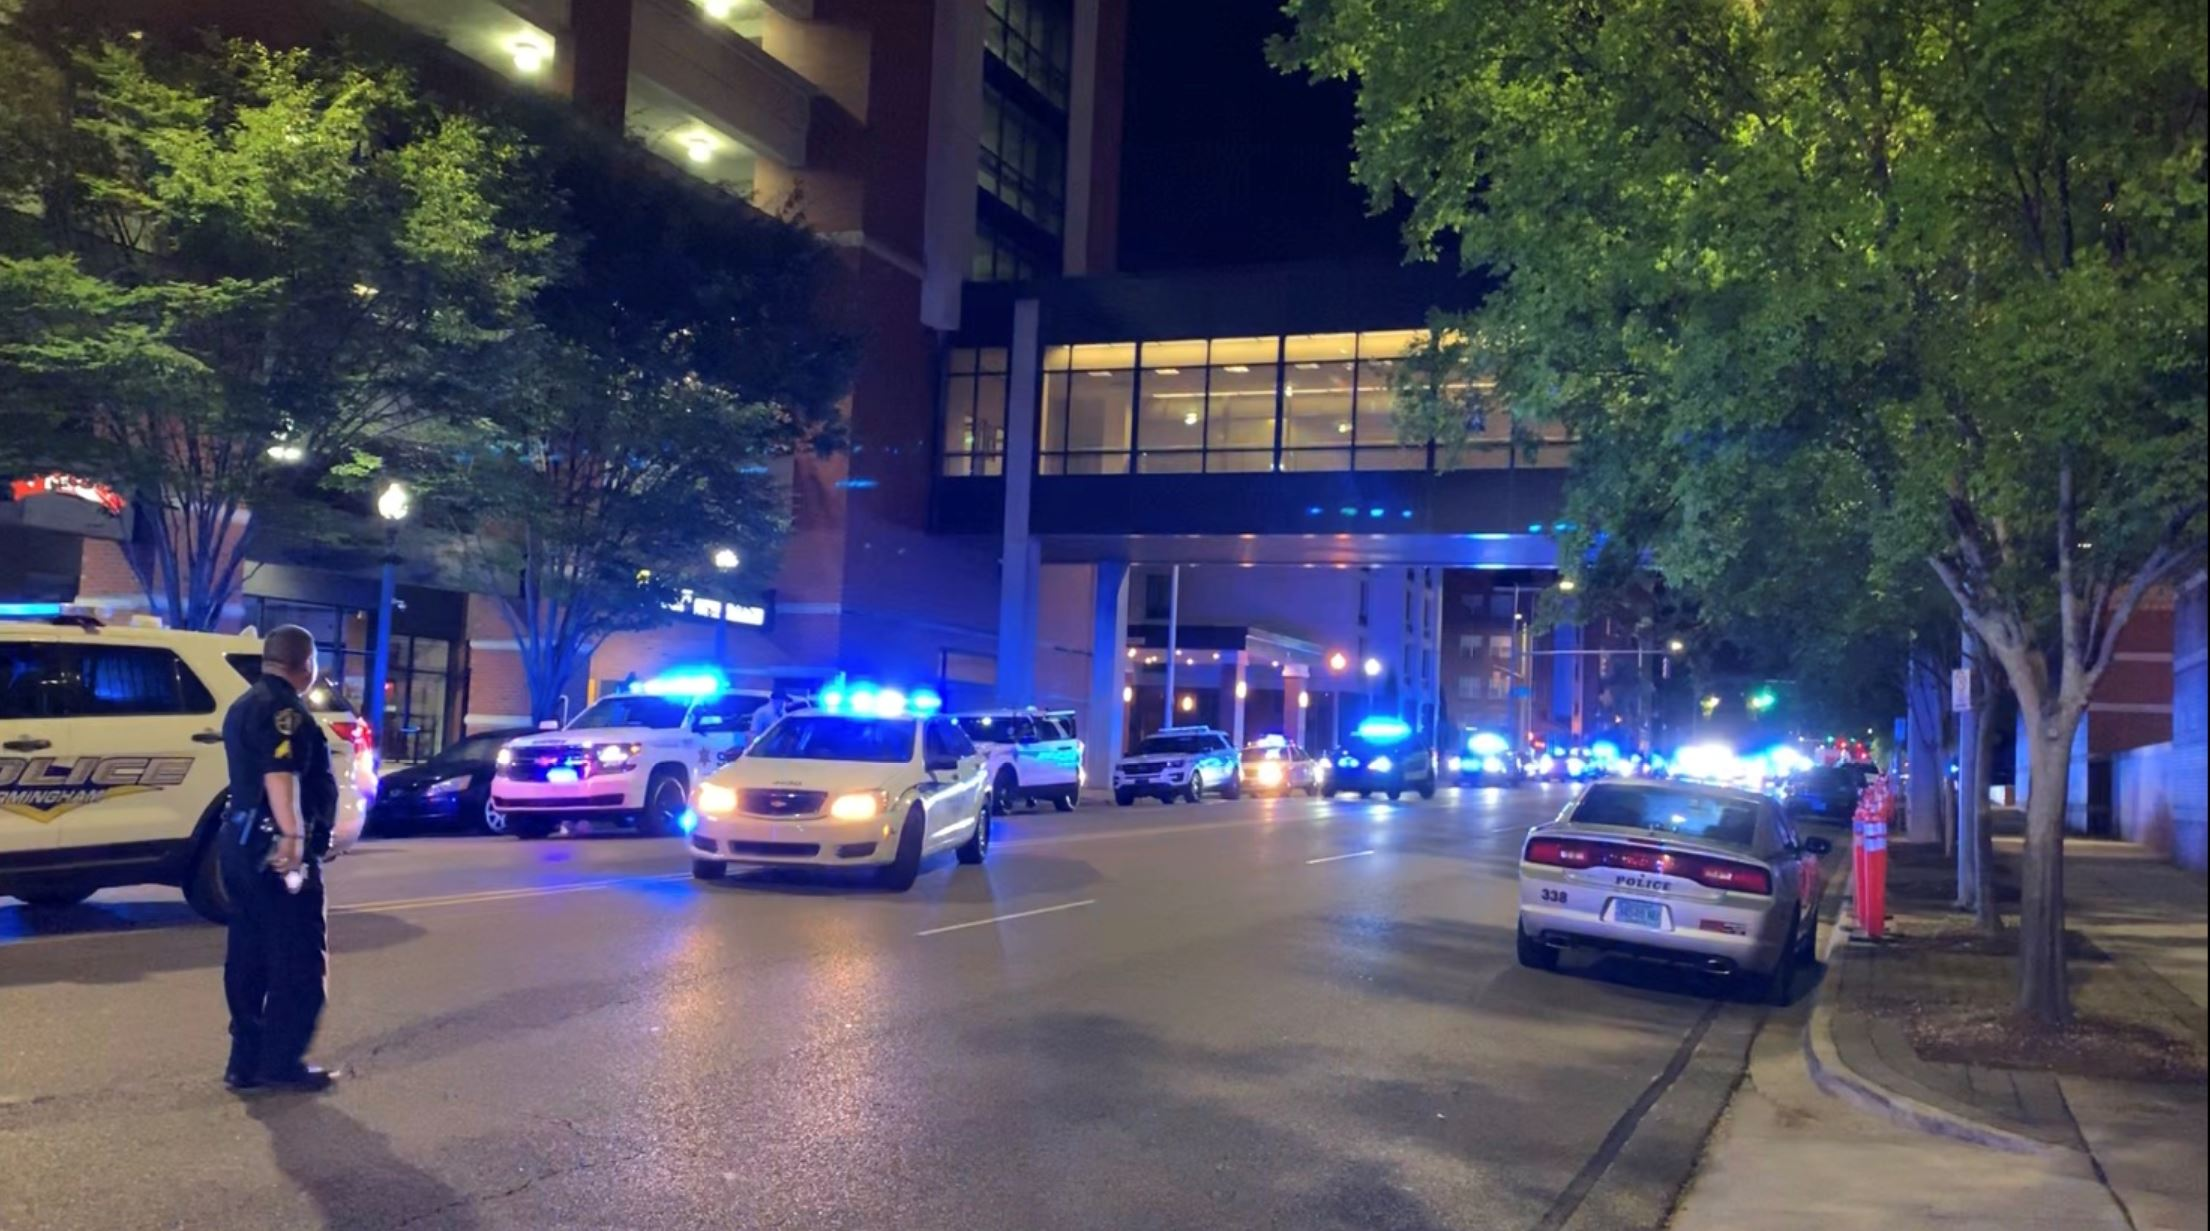 Birmingham police officer staged shooting, faked distress